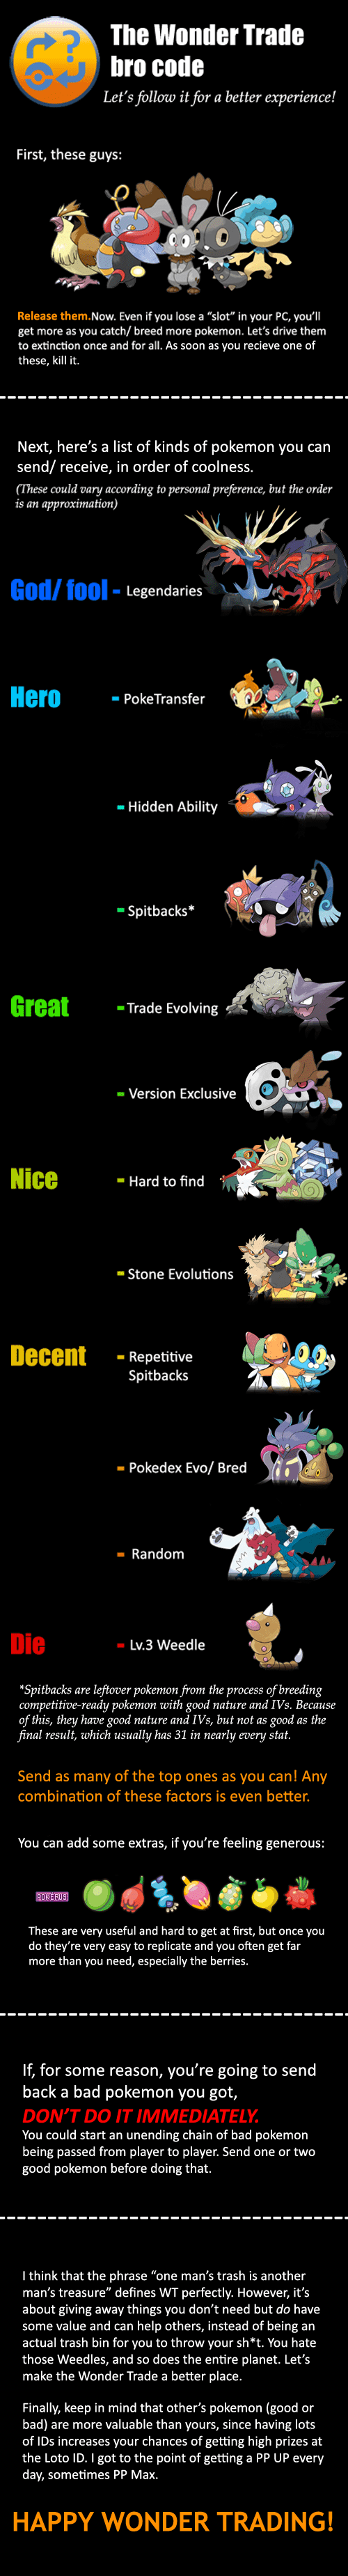 Remember to Follow the Wonder Trade Bro Code